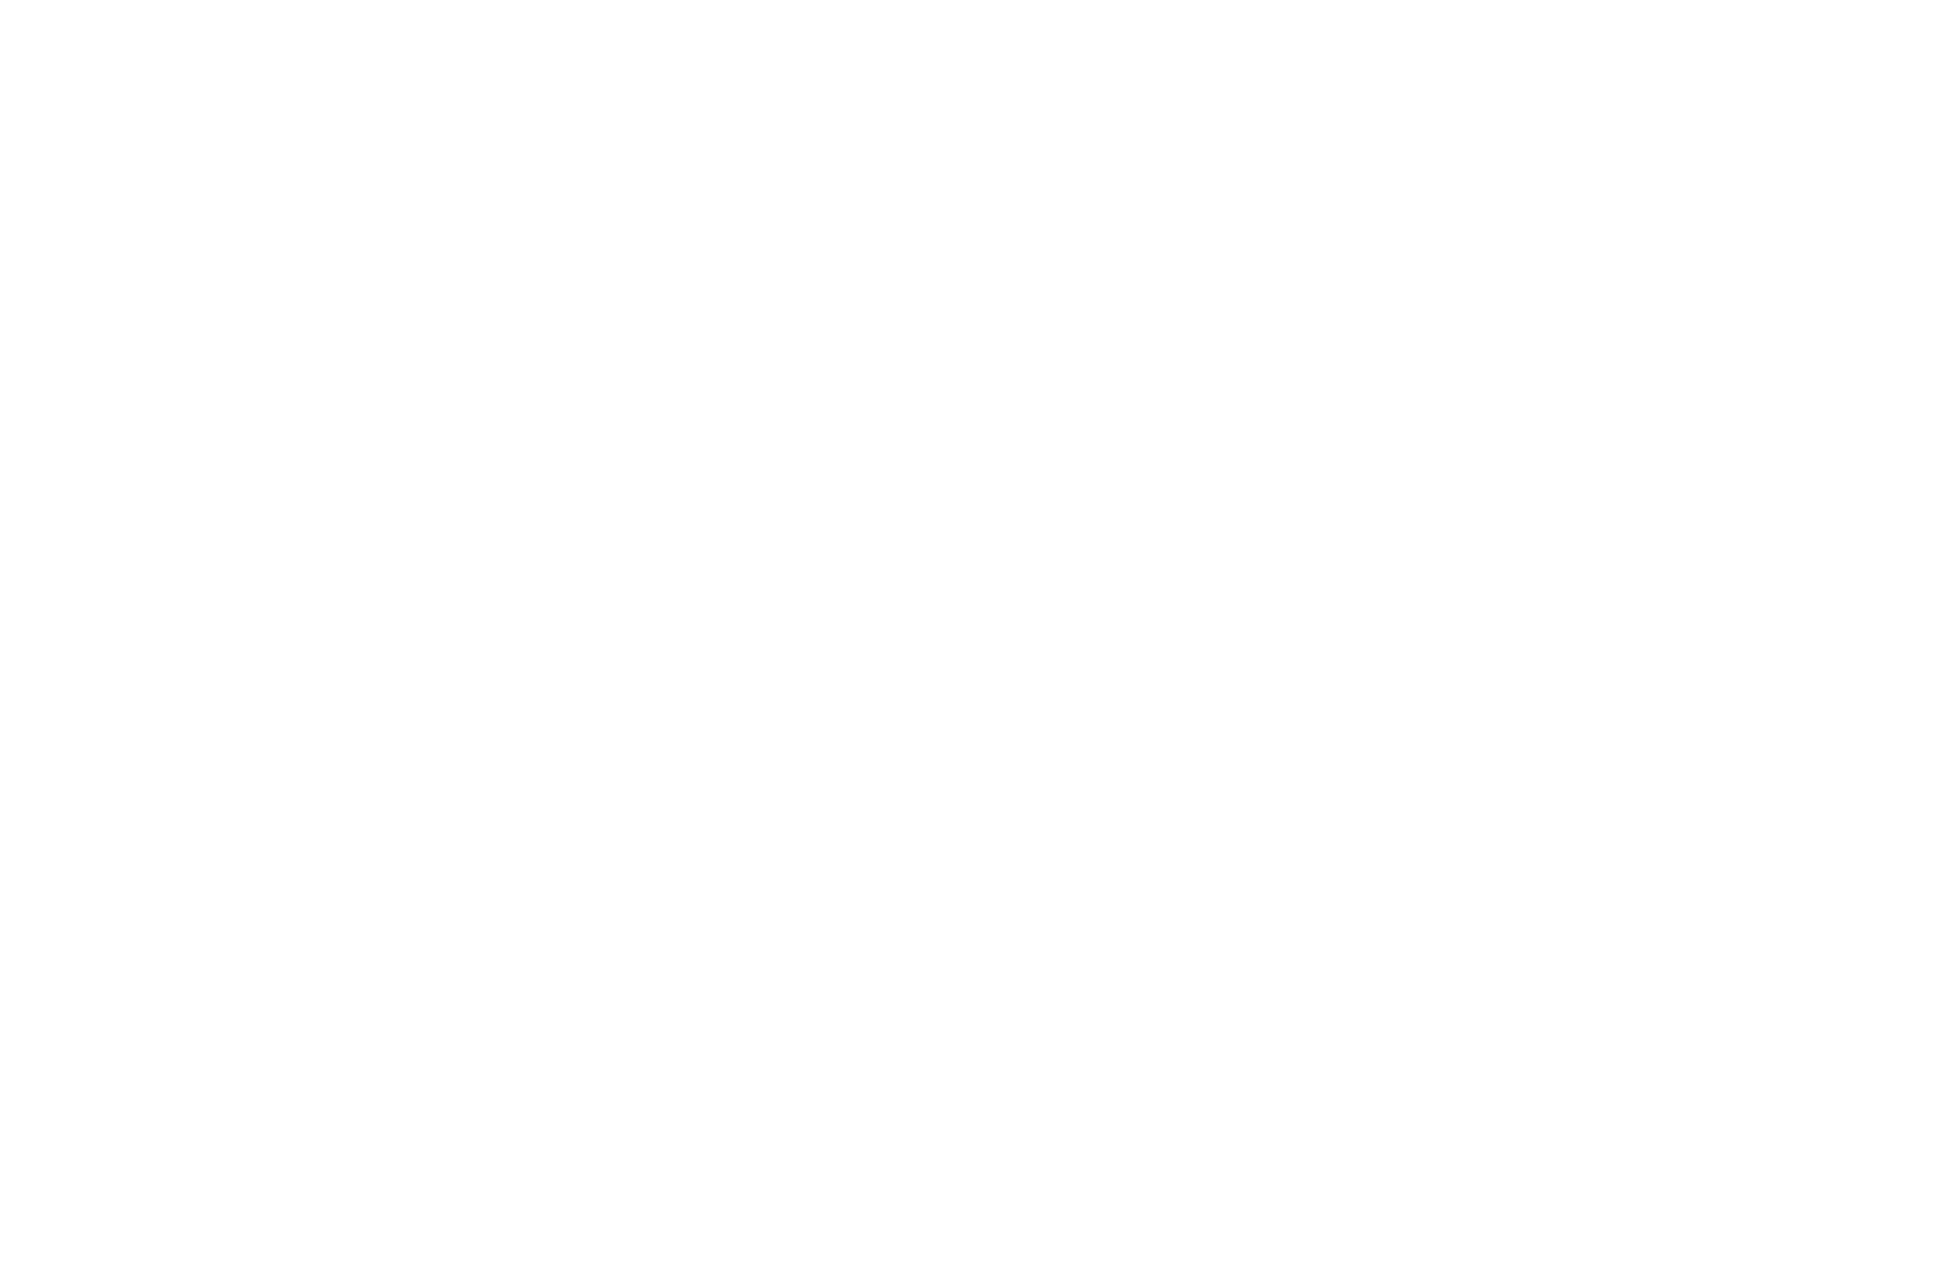 Best Short Film Summer 2018